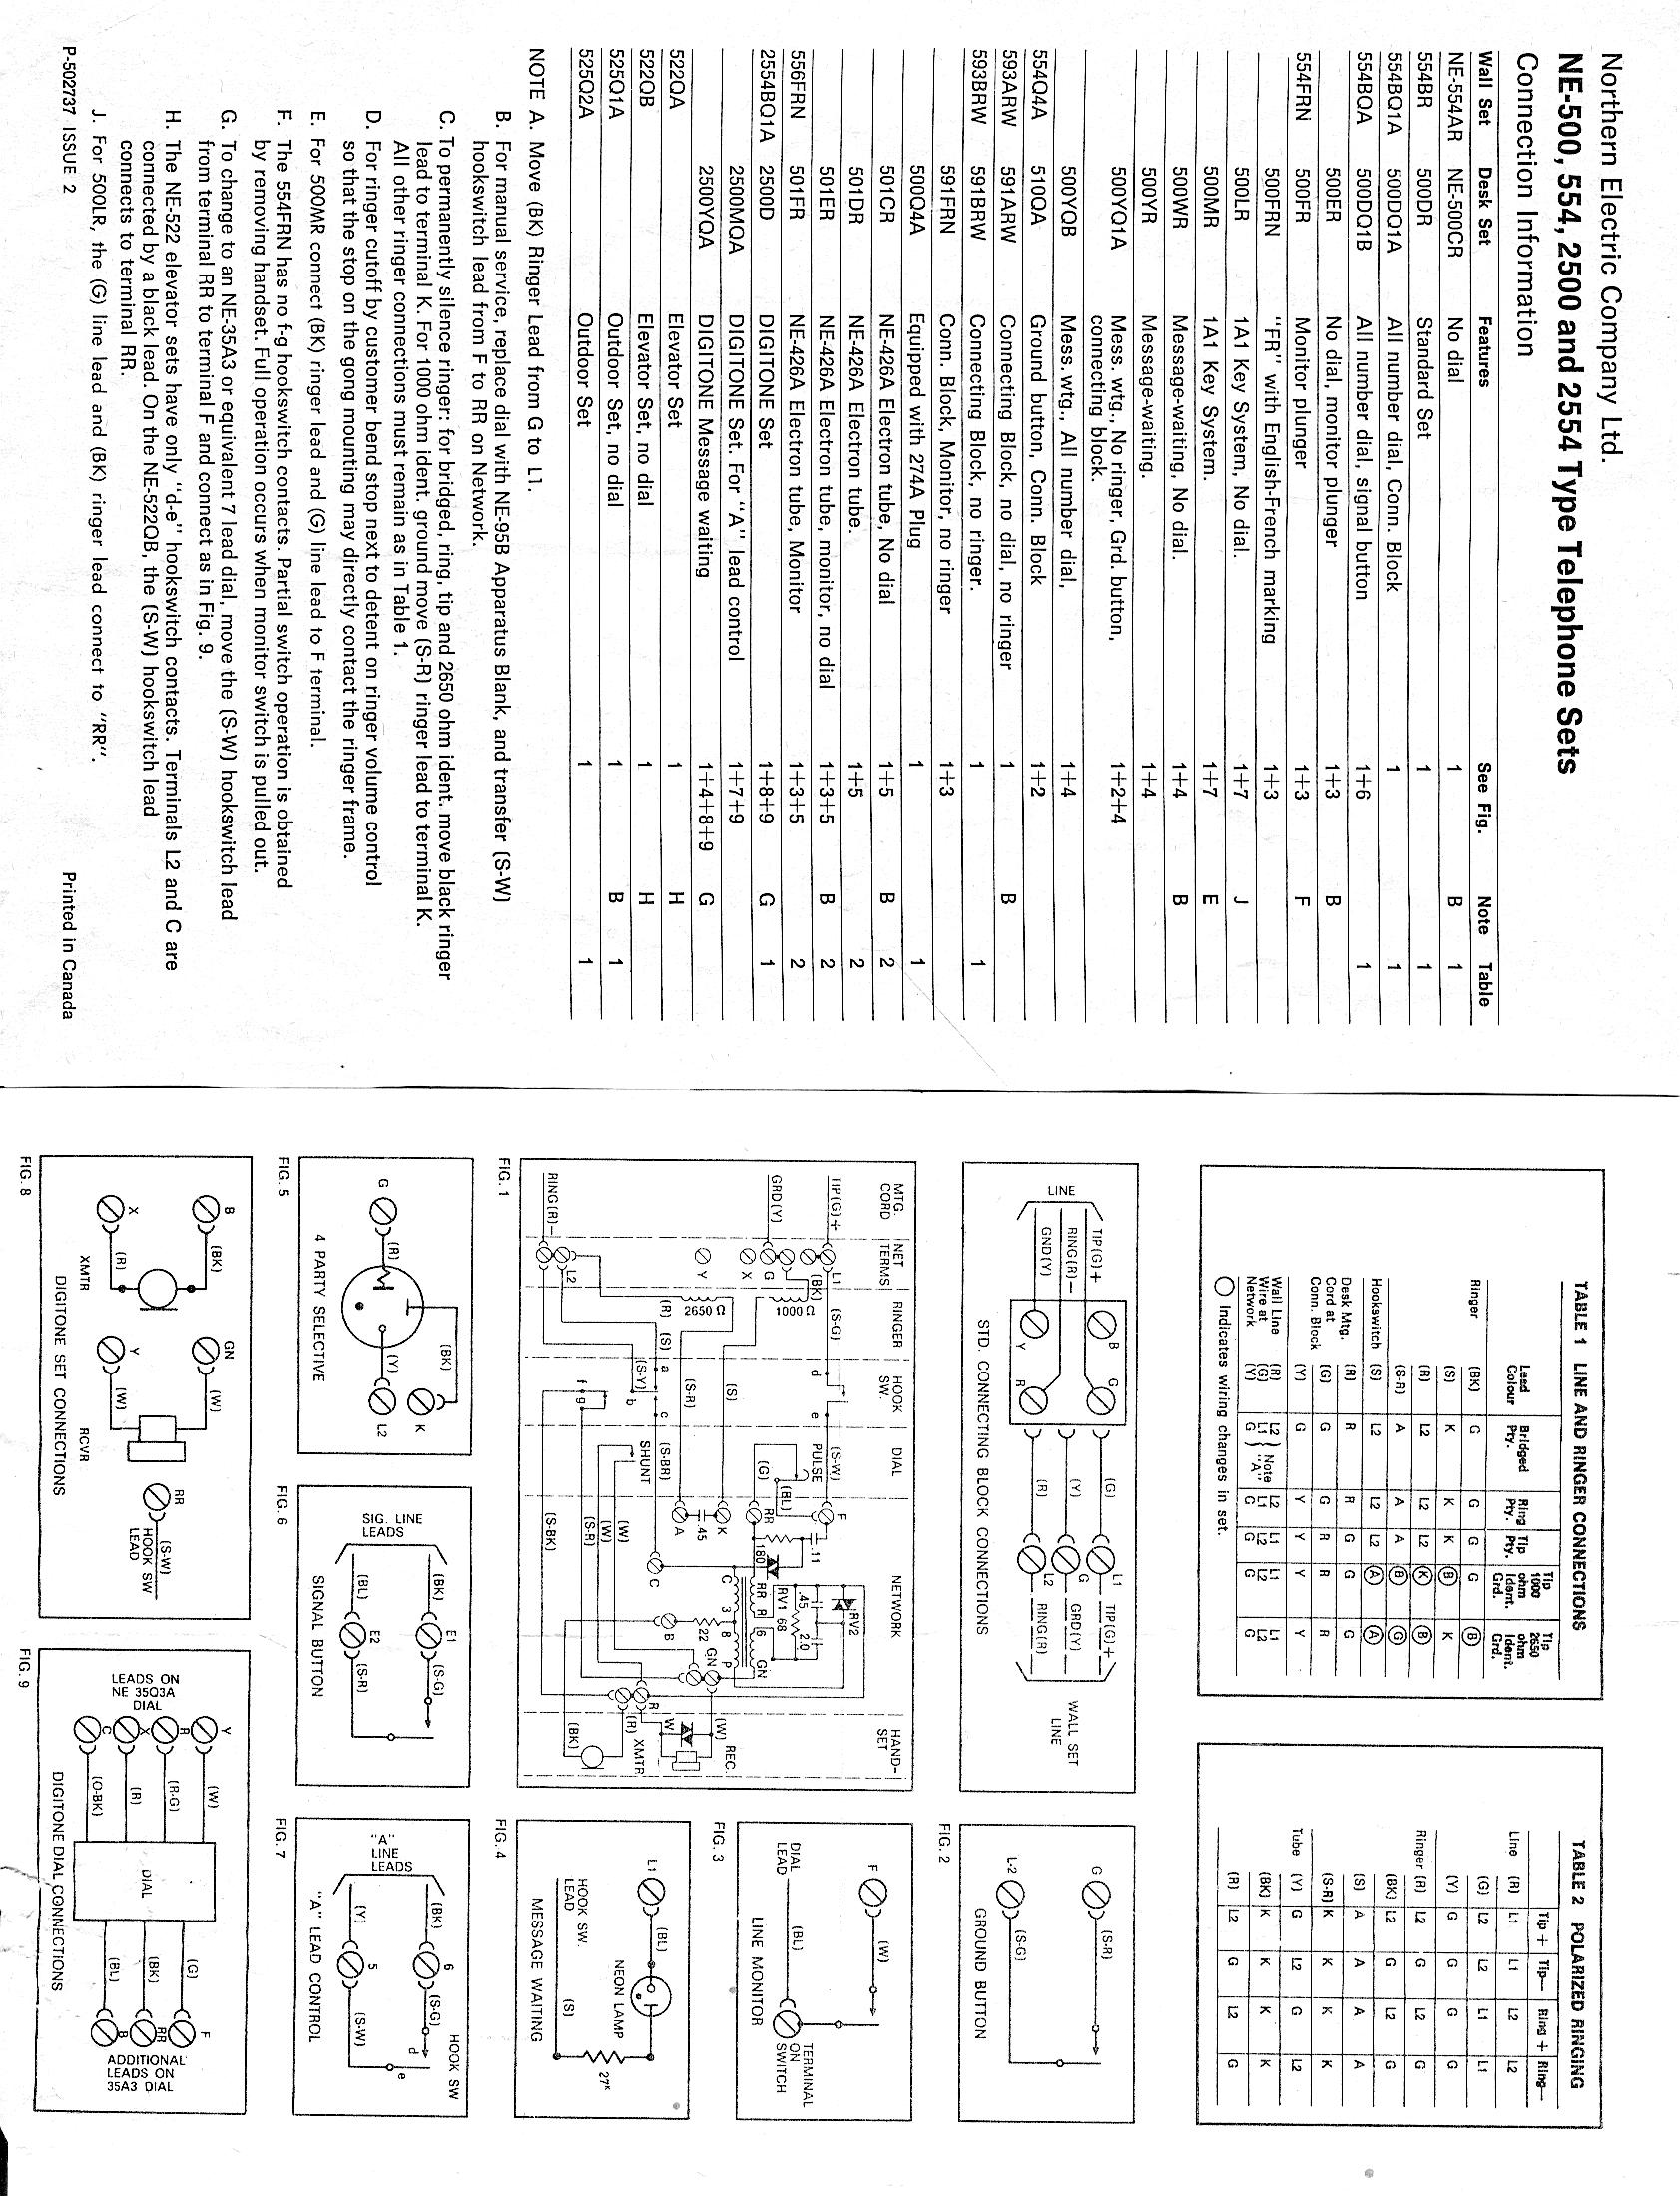 ne500 554 2500 2554 telephone technical references western electric 554 wiring diagram at mifinder.co